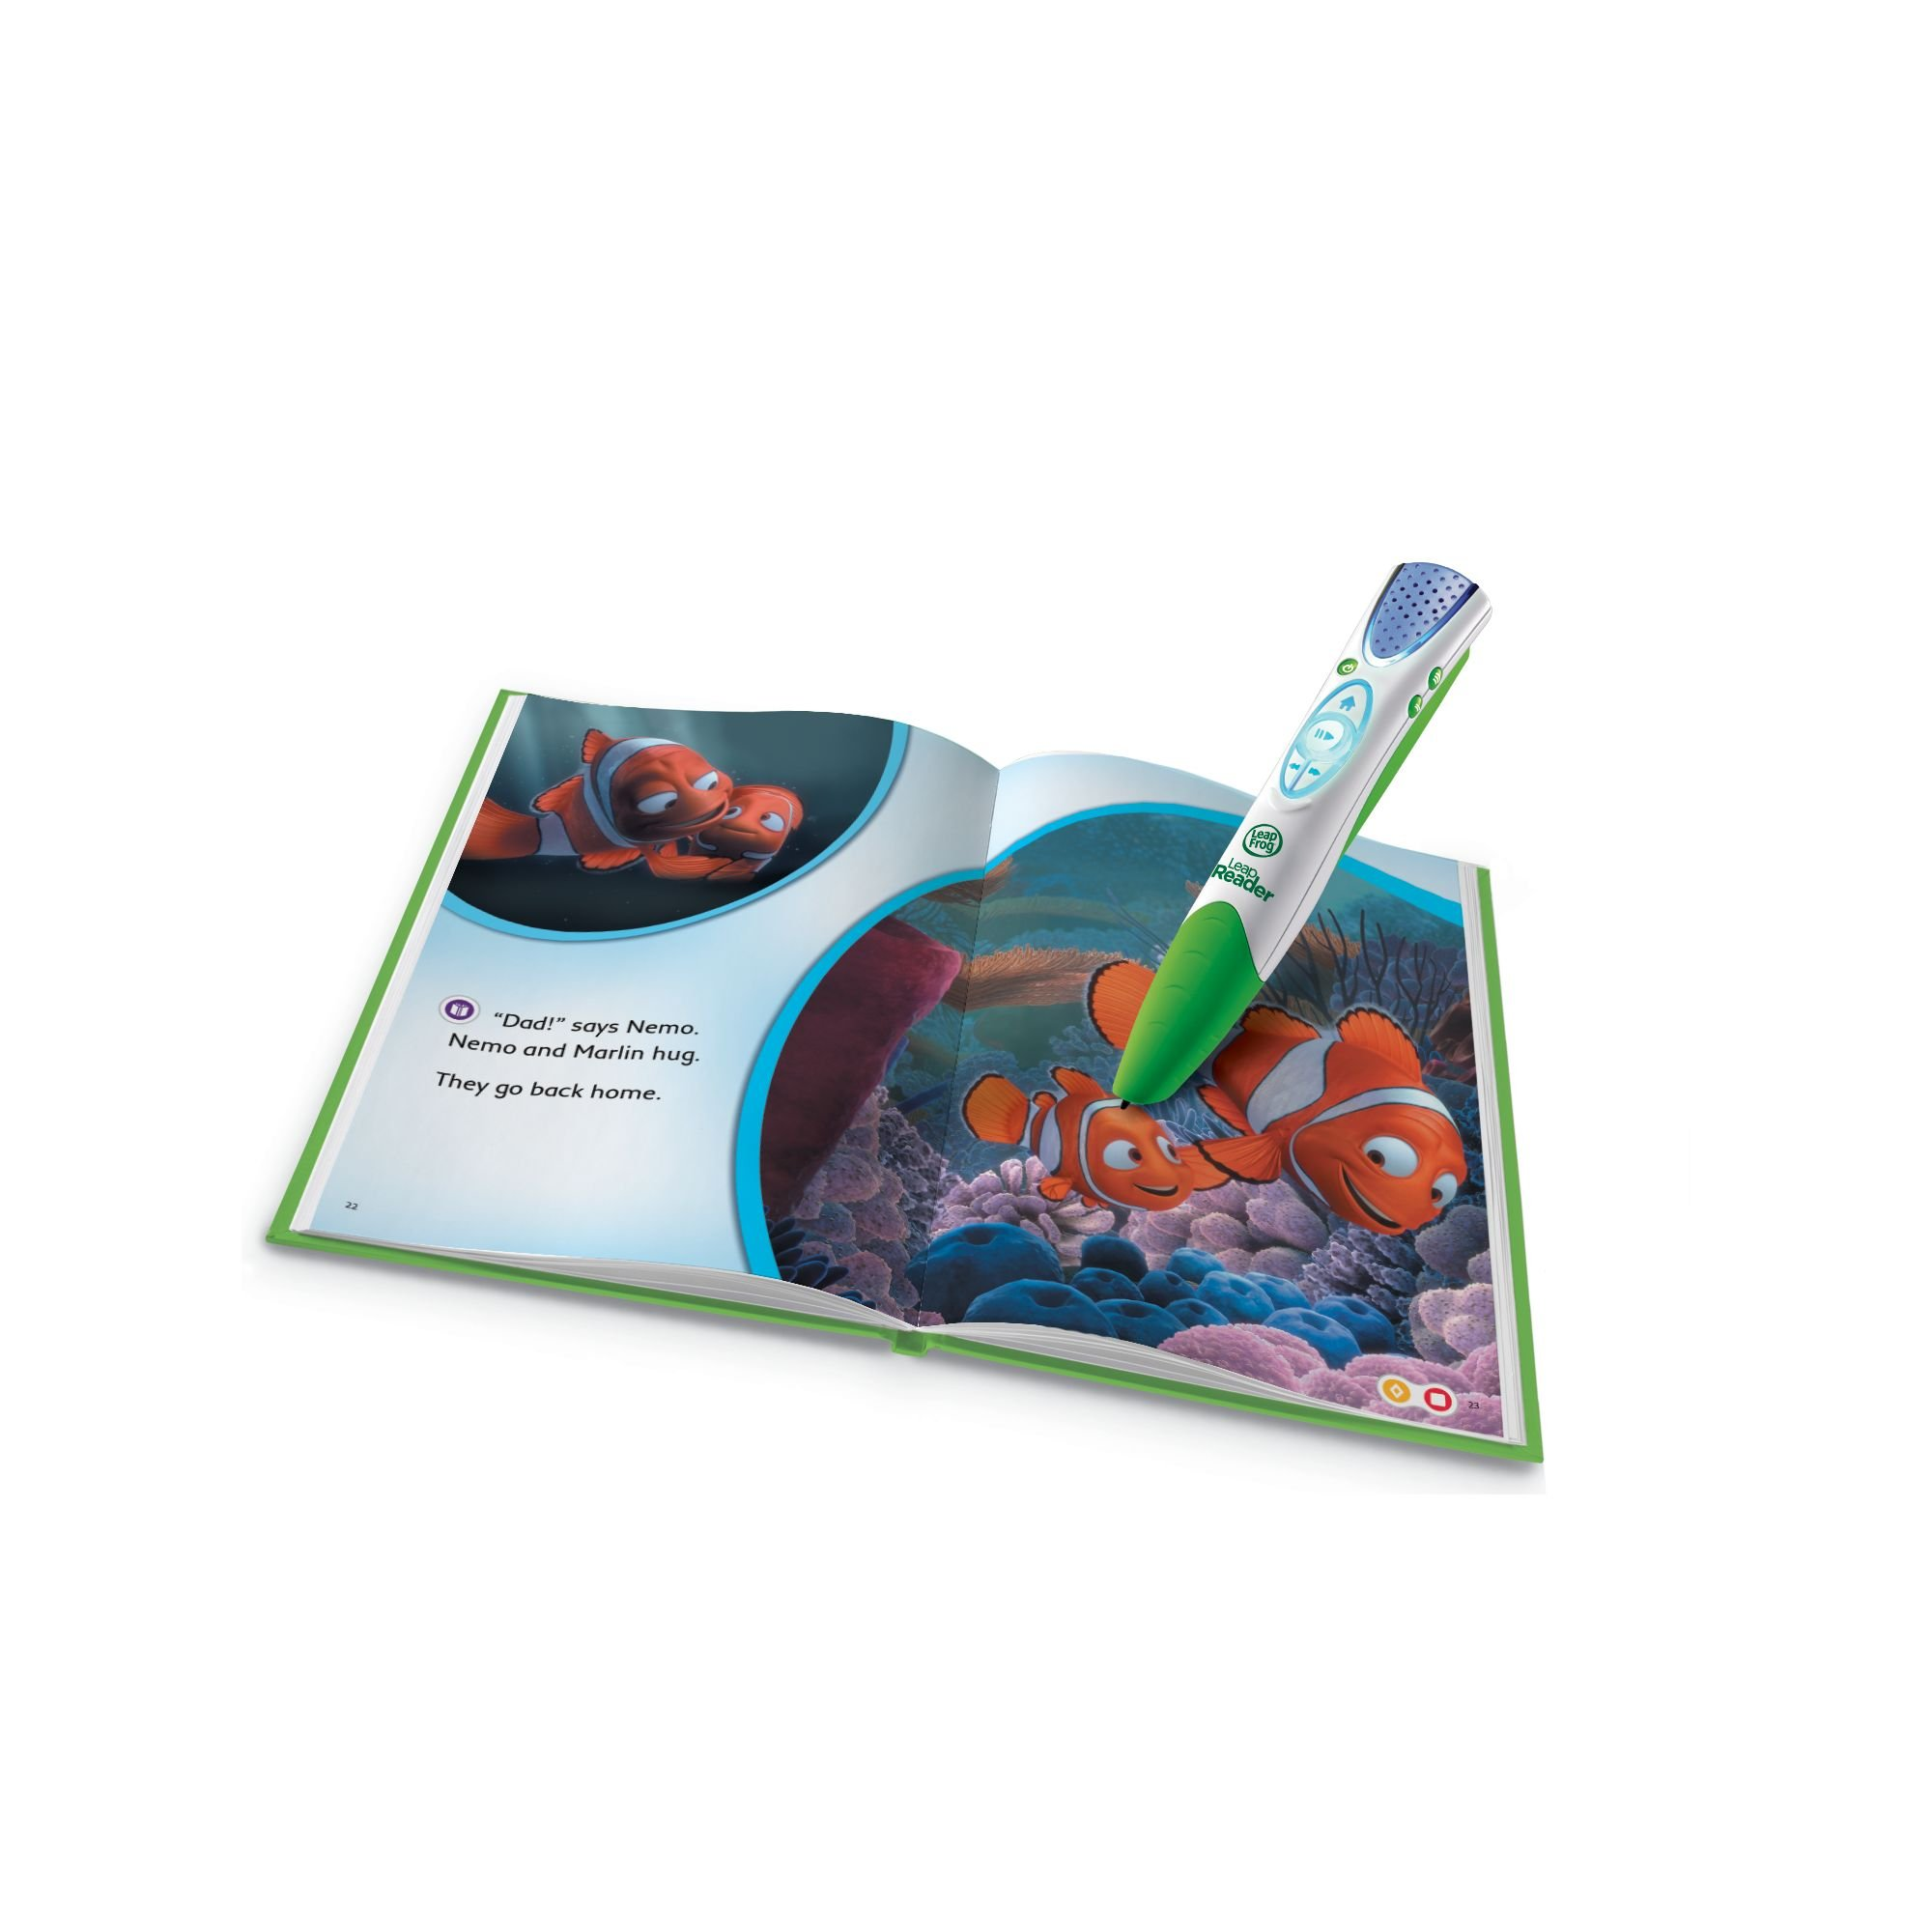 LeapFrog LeapReader Book: Disney·Pixar Finding Nemo, Lost and Found (works with Tag) by LeapFrog (Image #2)